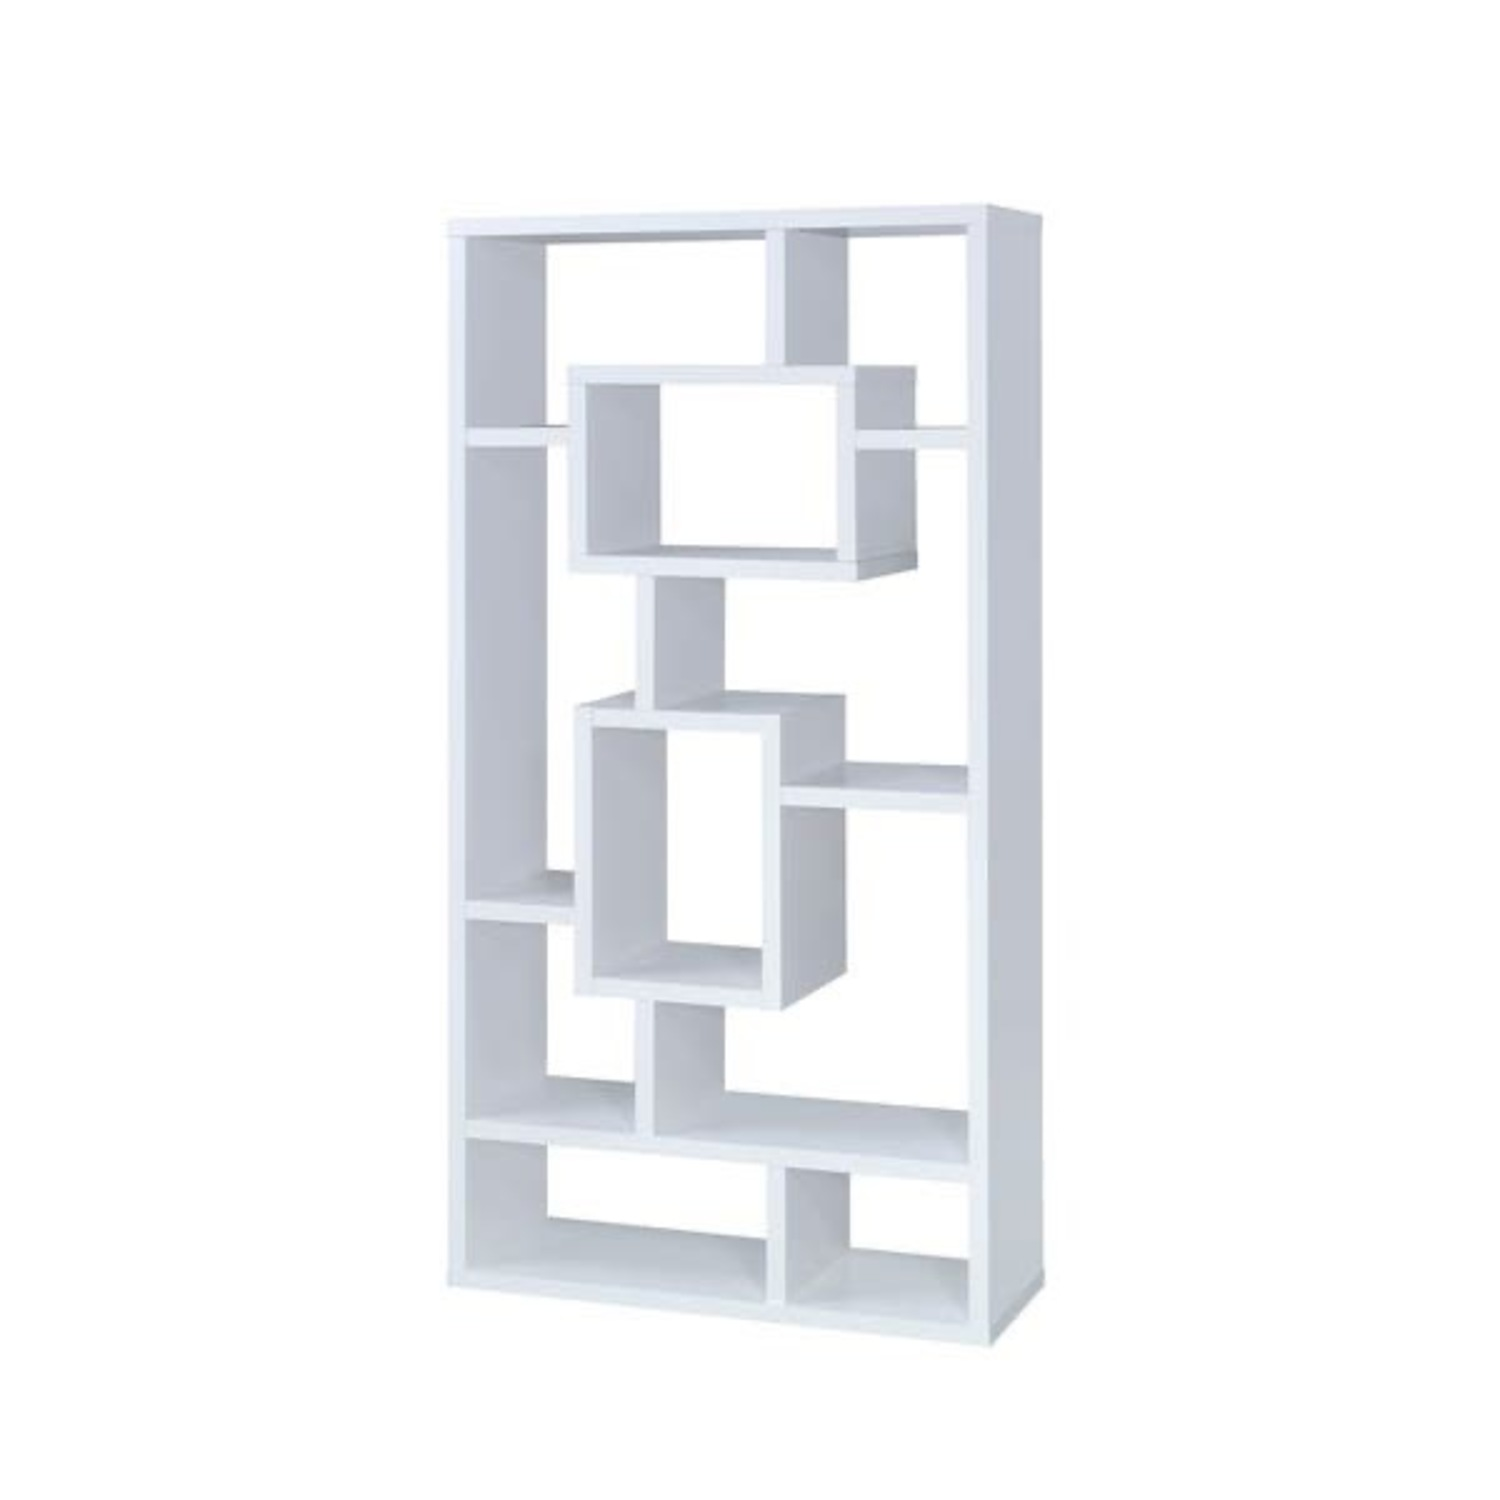 White Geometric Shelves - image-0